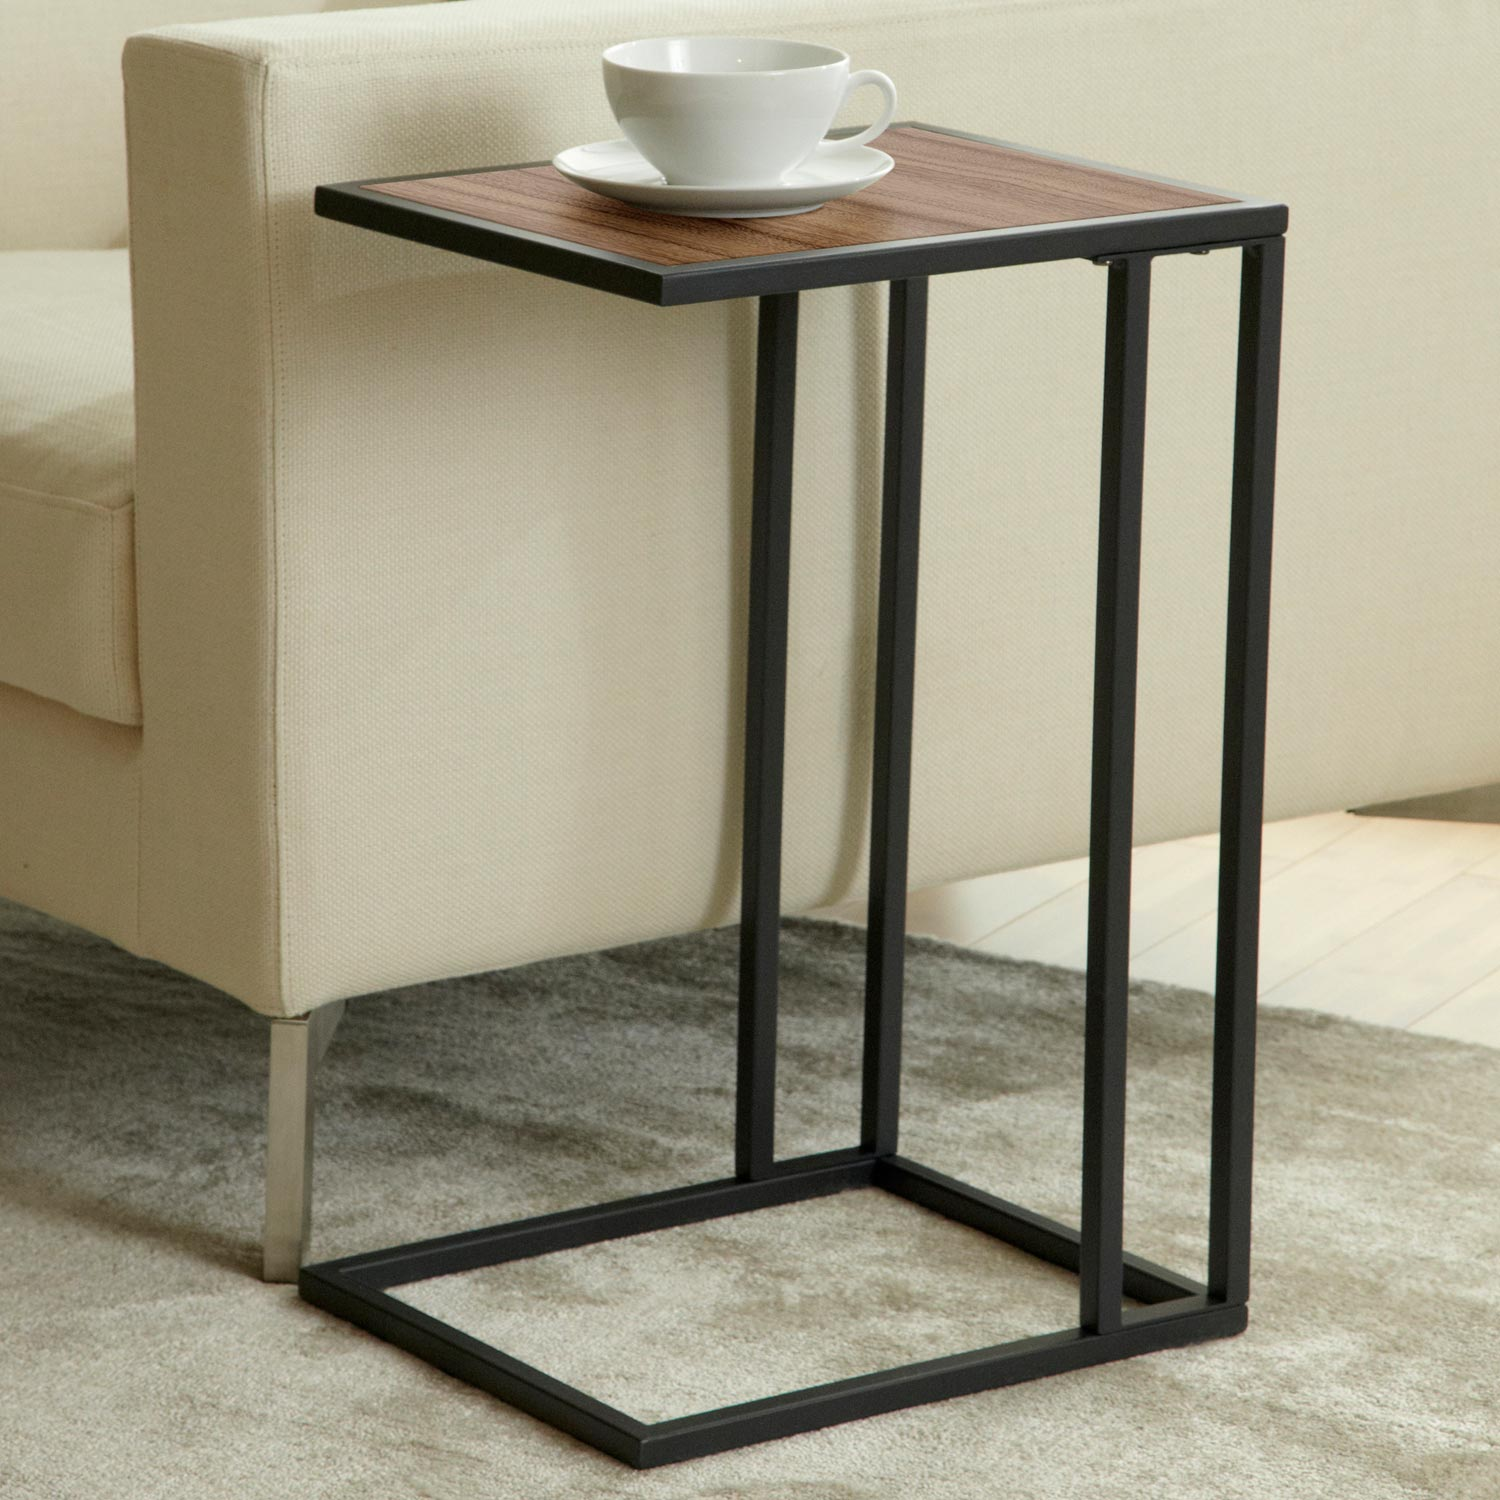 Parson Snack / Laptop Table - Steel Frame, Walnut Top